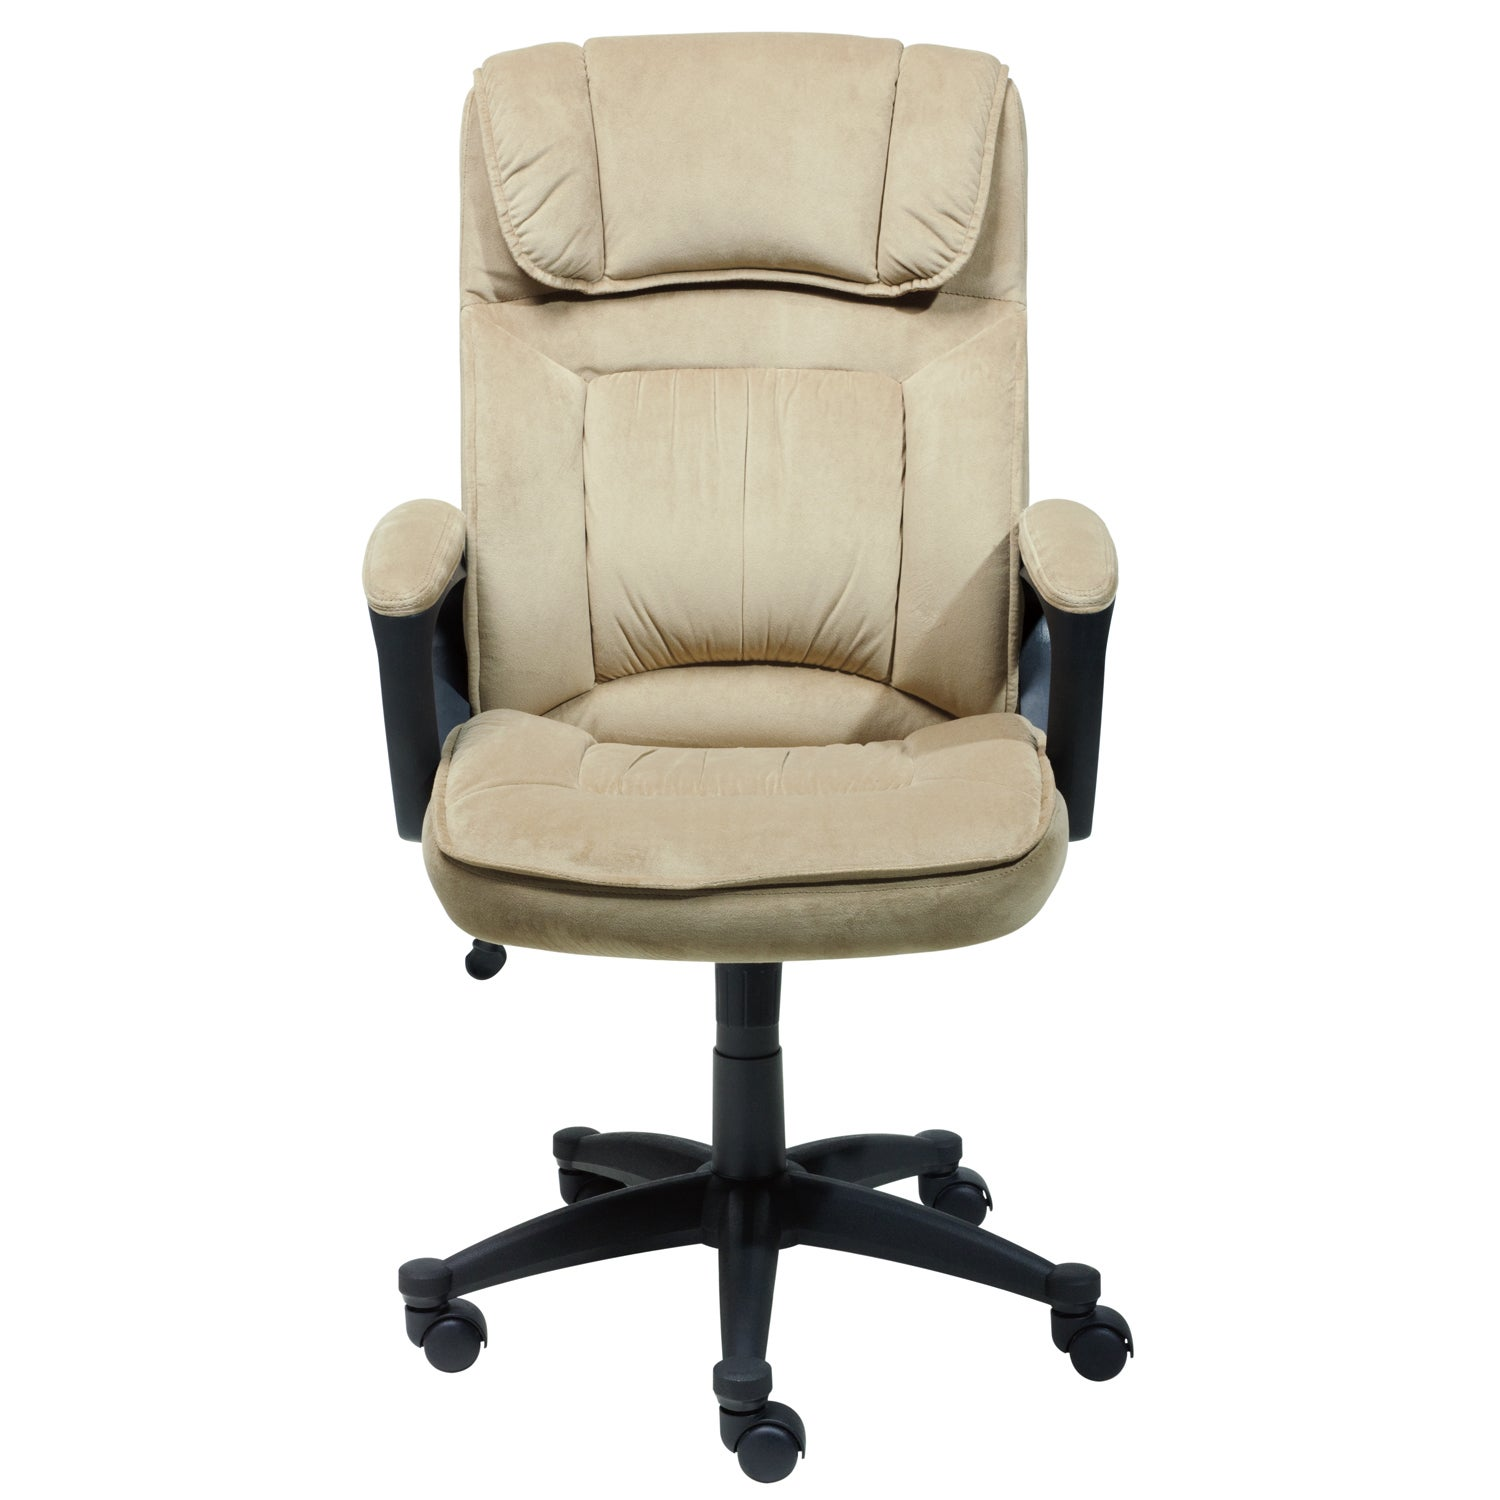 Captivating Serta Light Coffee Microfiber Executive Office Chair   Free Shipping Today    Overstock.com   16260148